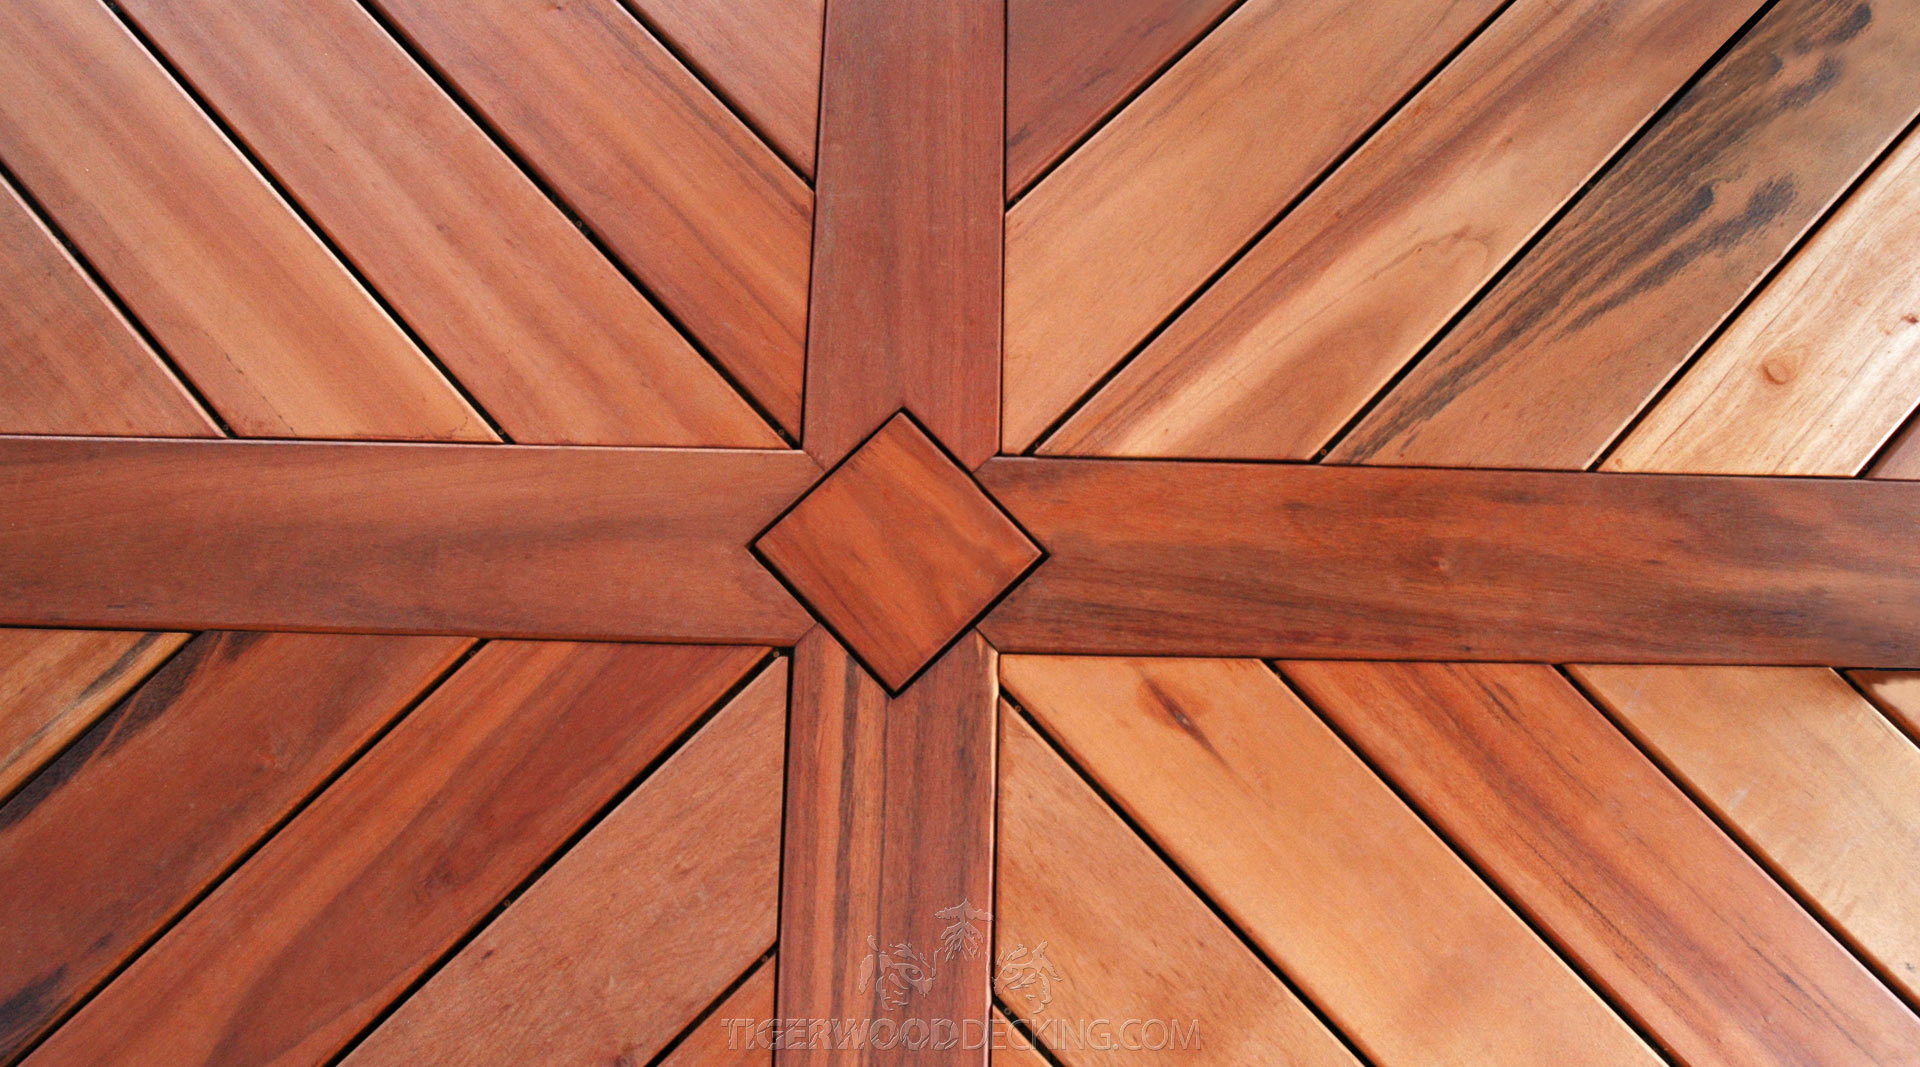 Tigerwood Decking | Composite Flooring for Decks | Types of Wood for Decking